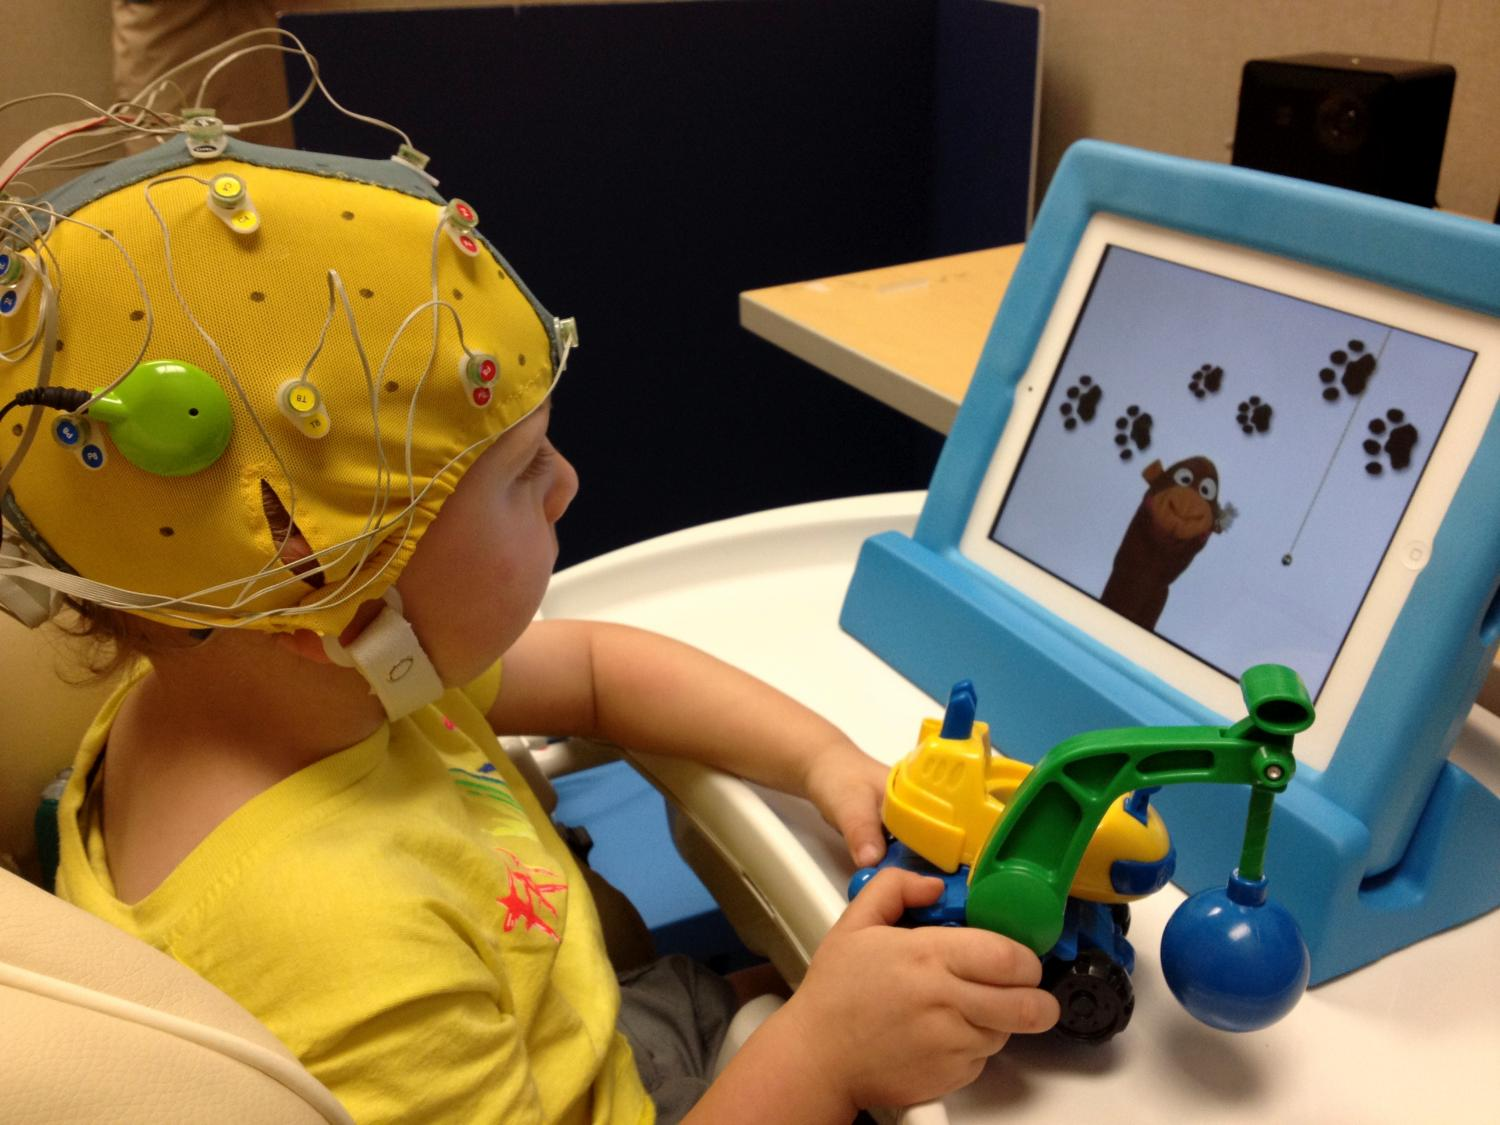 Toys For Epilepsy : Researchers study how cochlear implants affect brain circuits